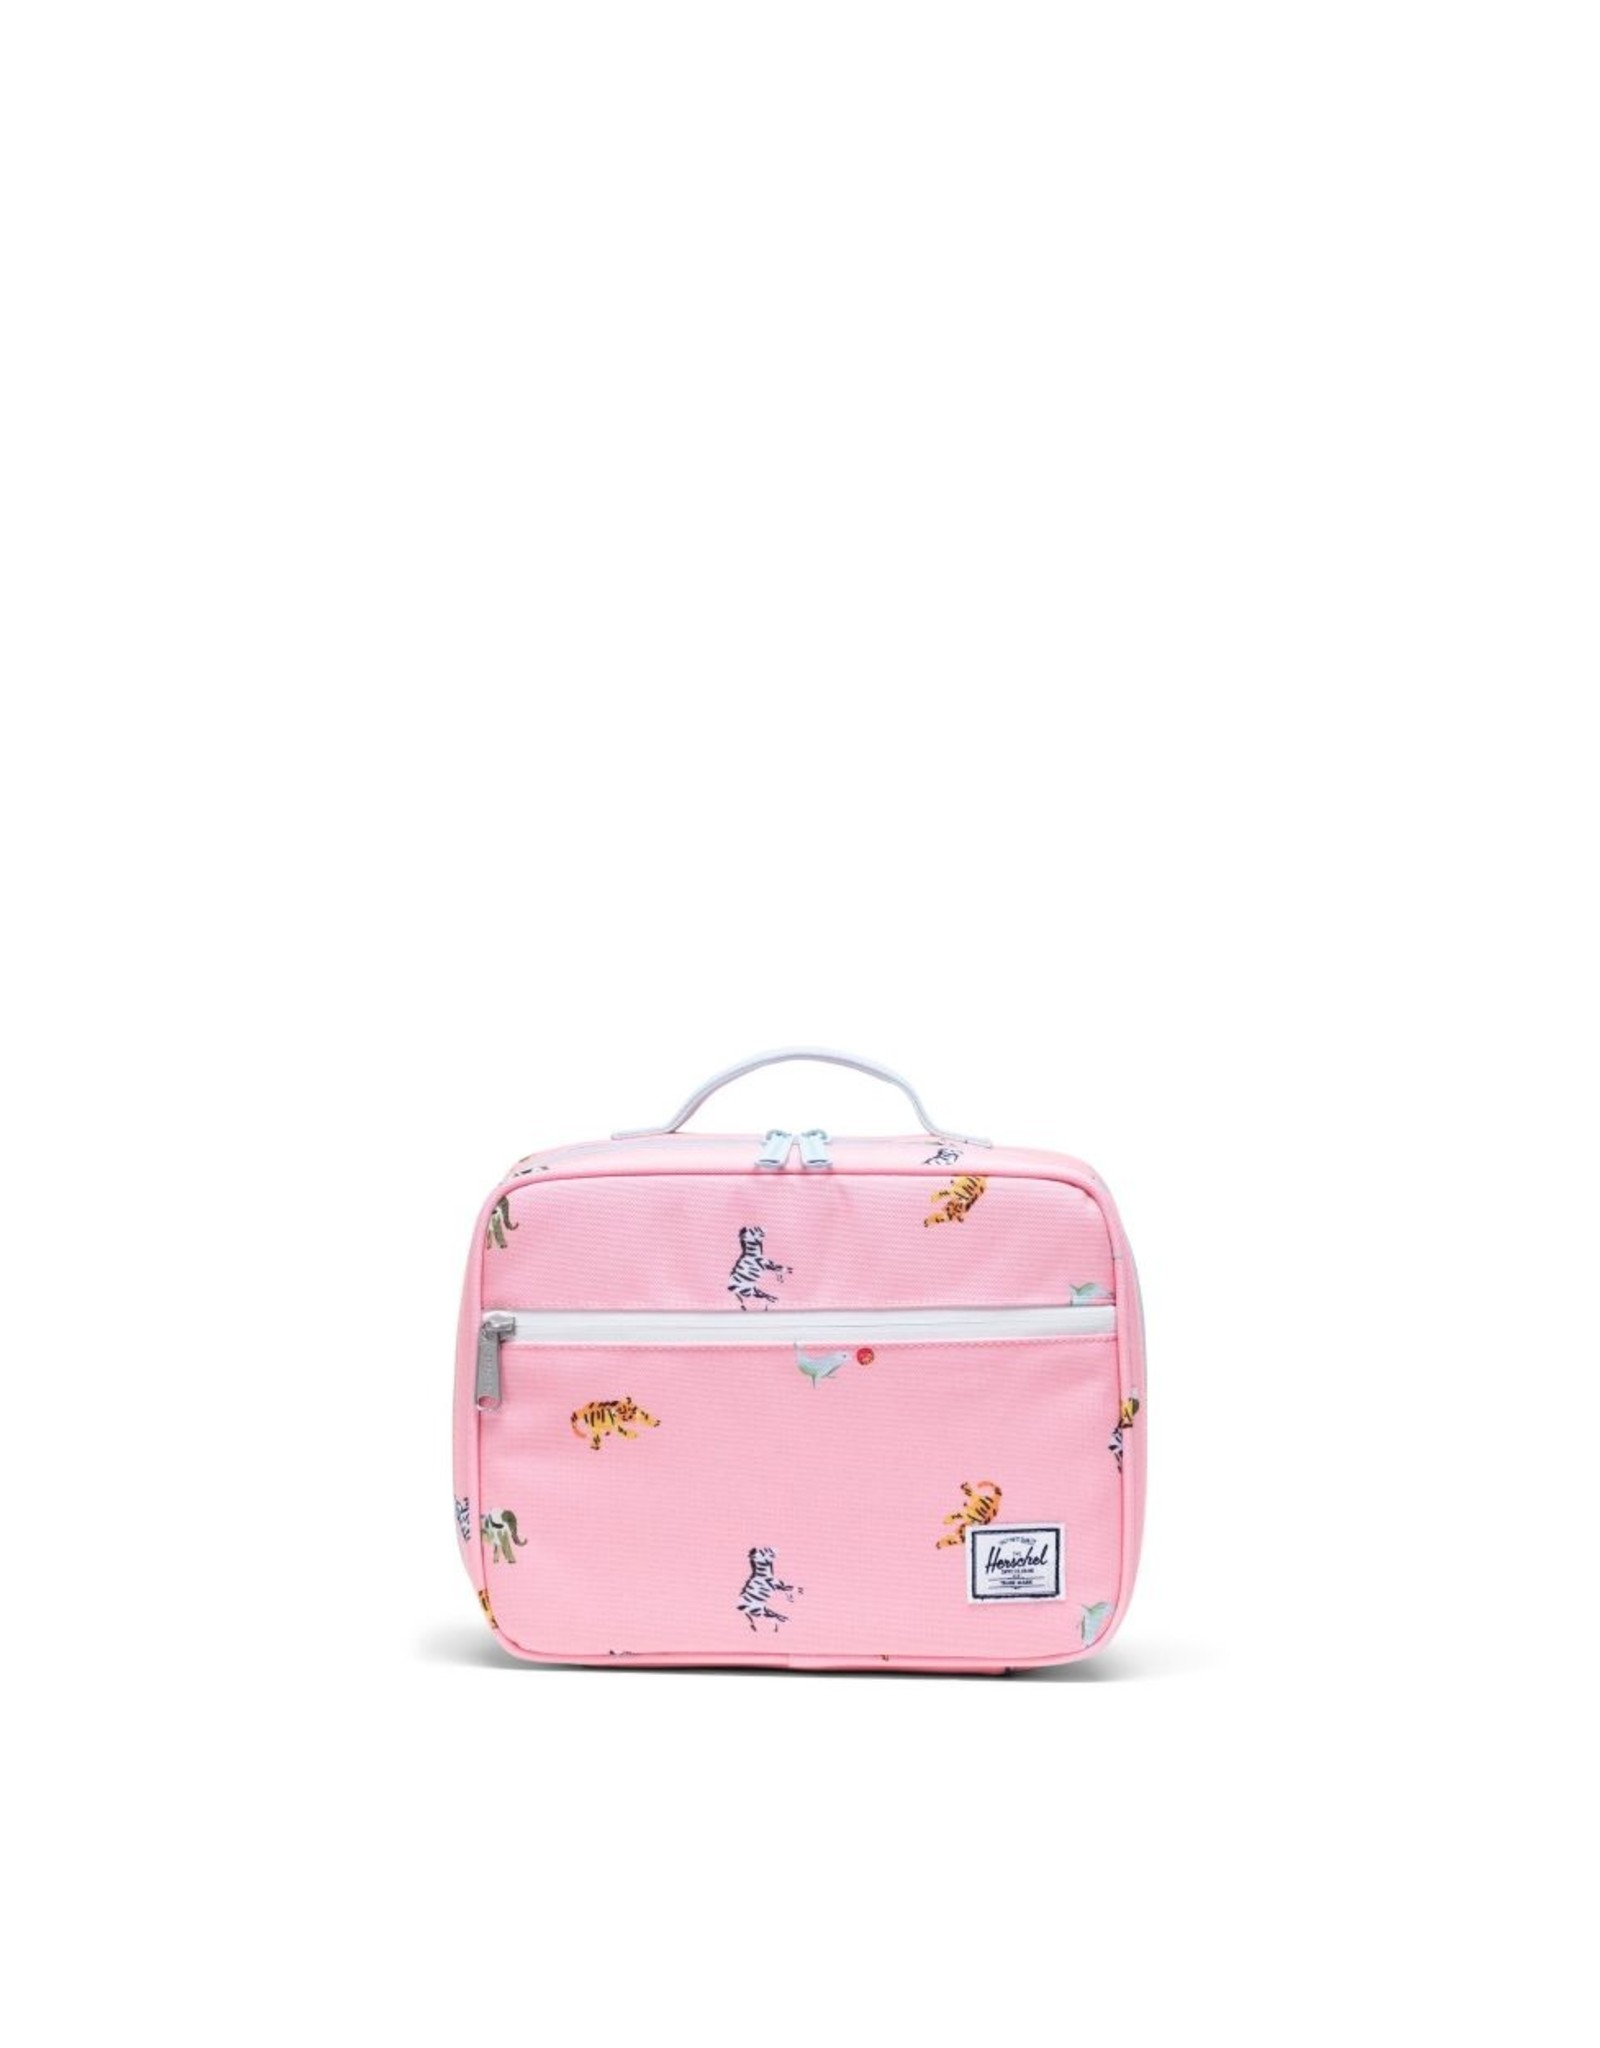 Herschel Supply Co. FA20 Pink Circus Lunch Box